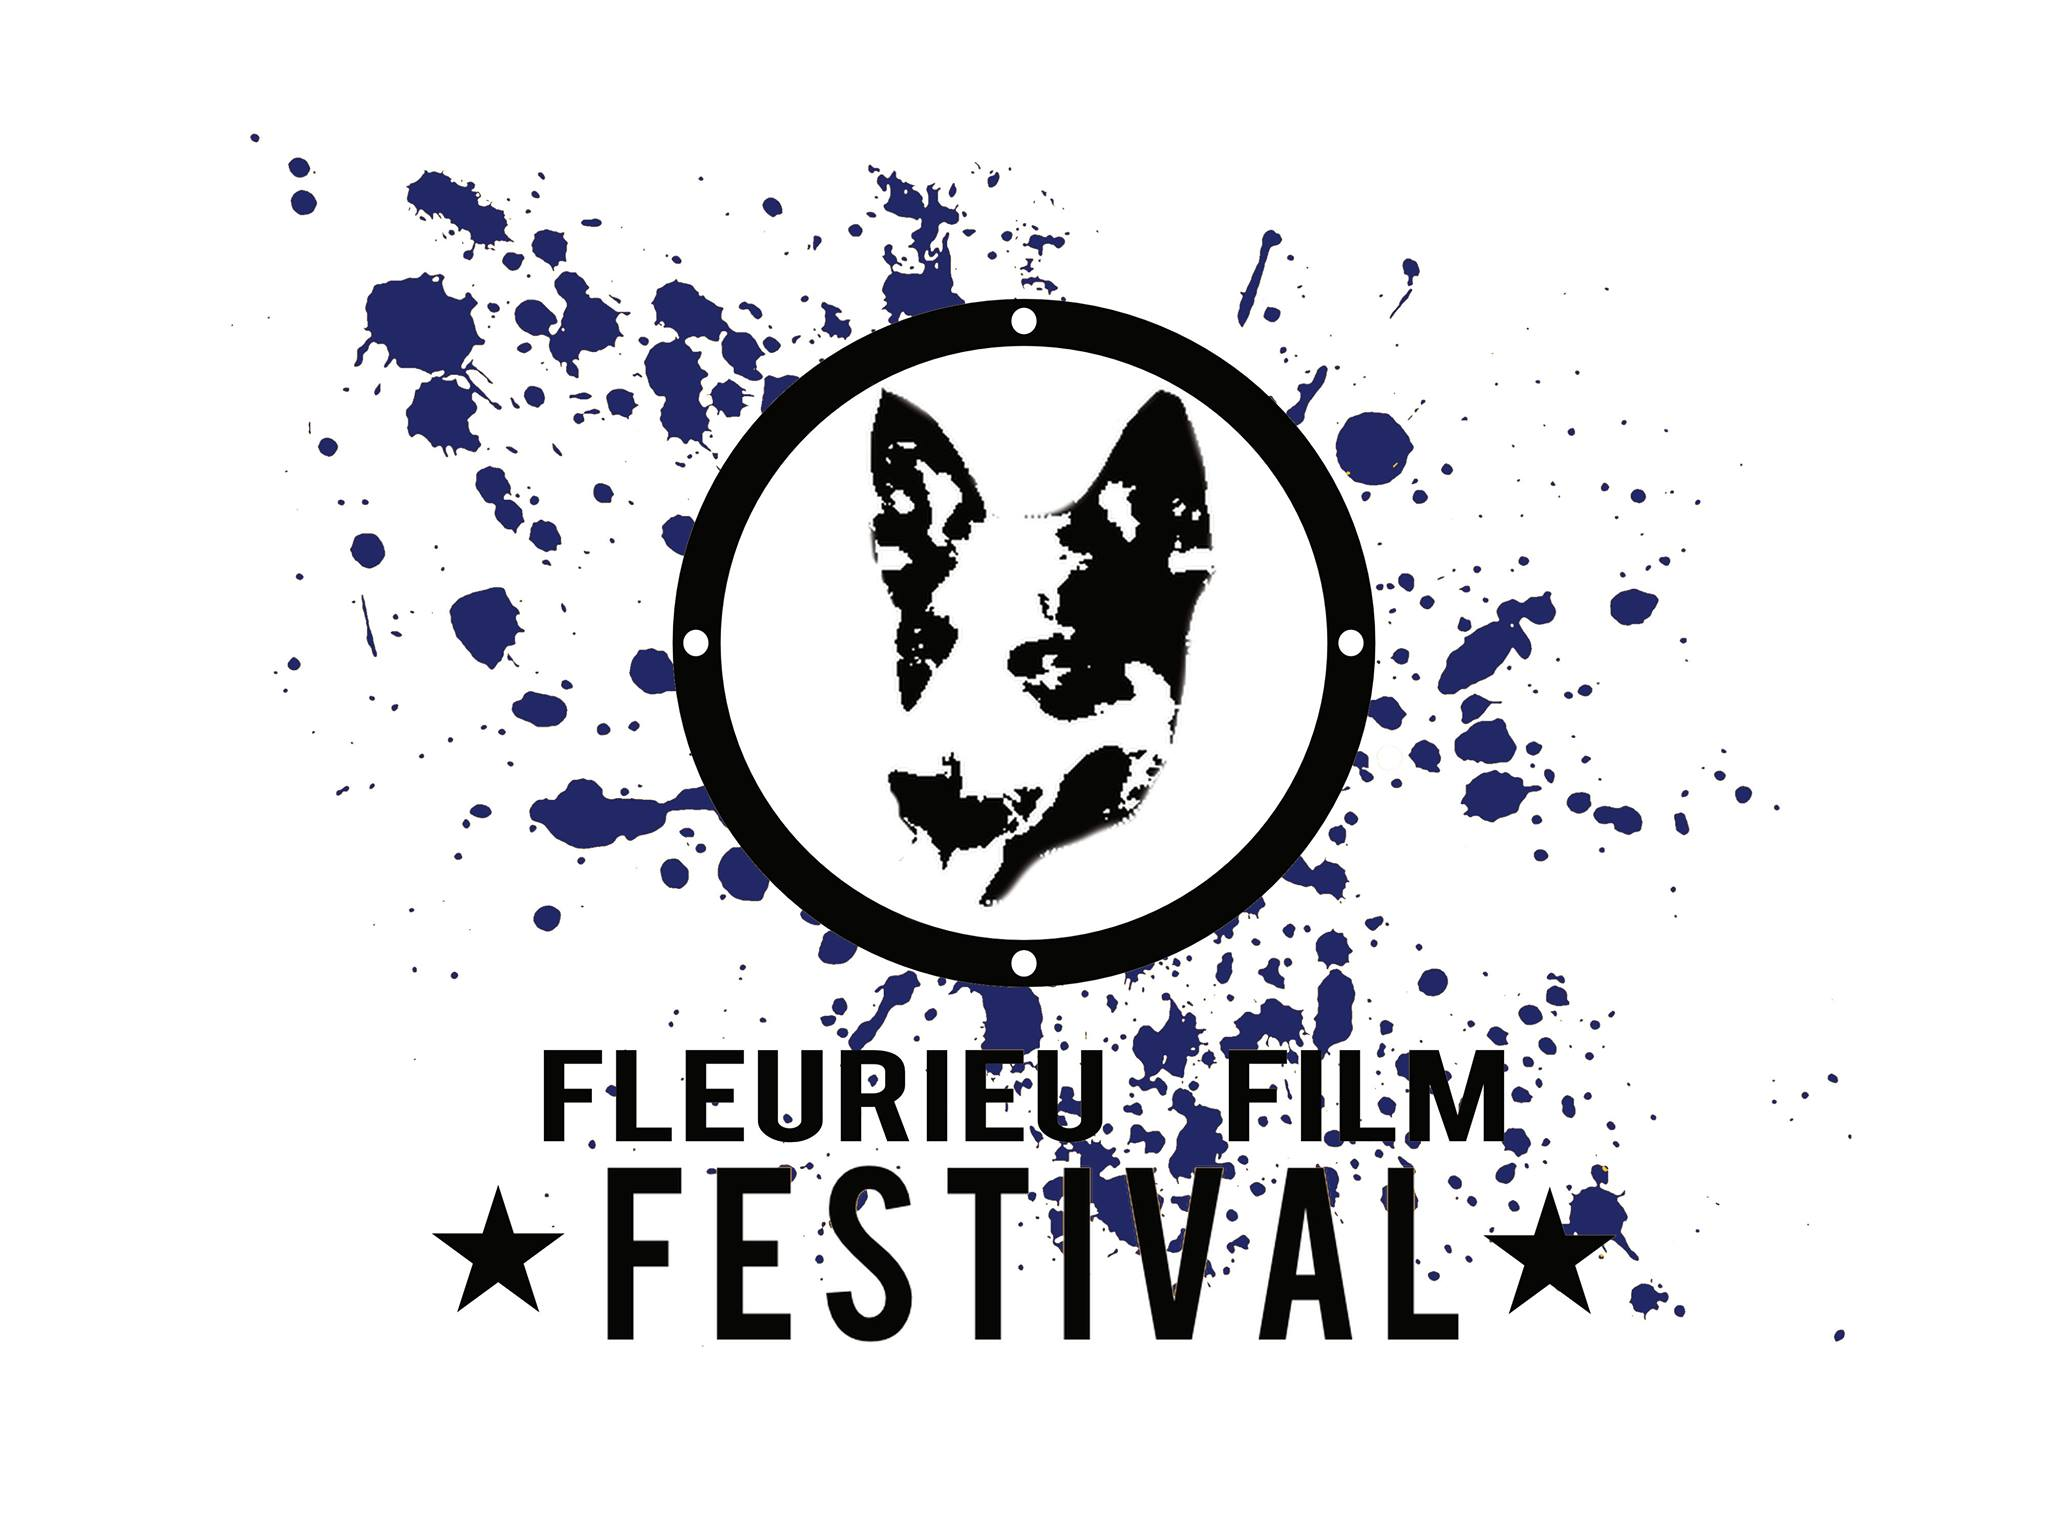 Fleurieu Film Festival - Pubs and Clubs